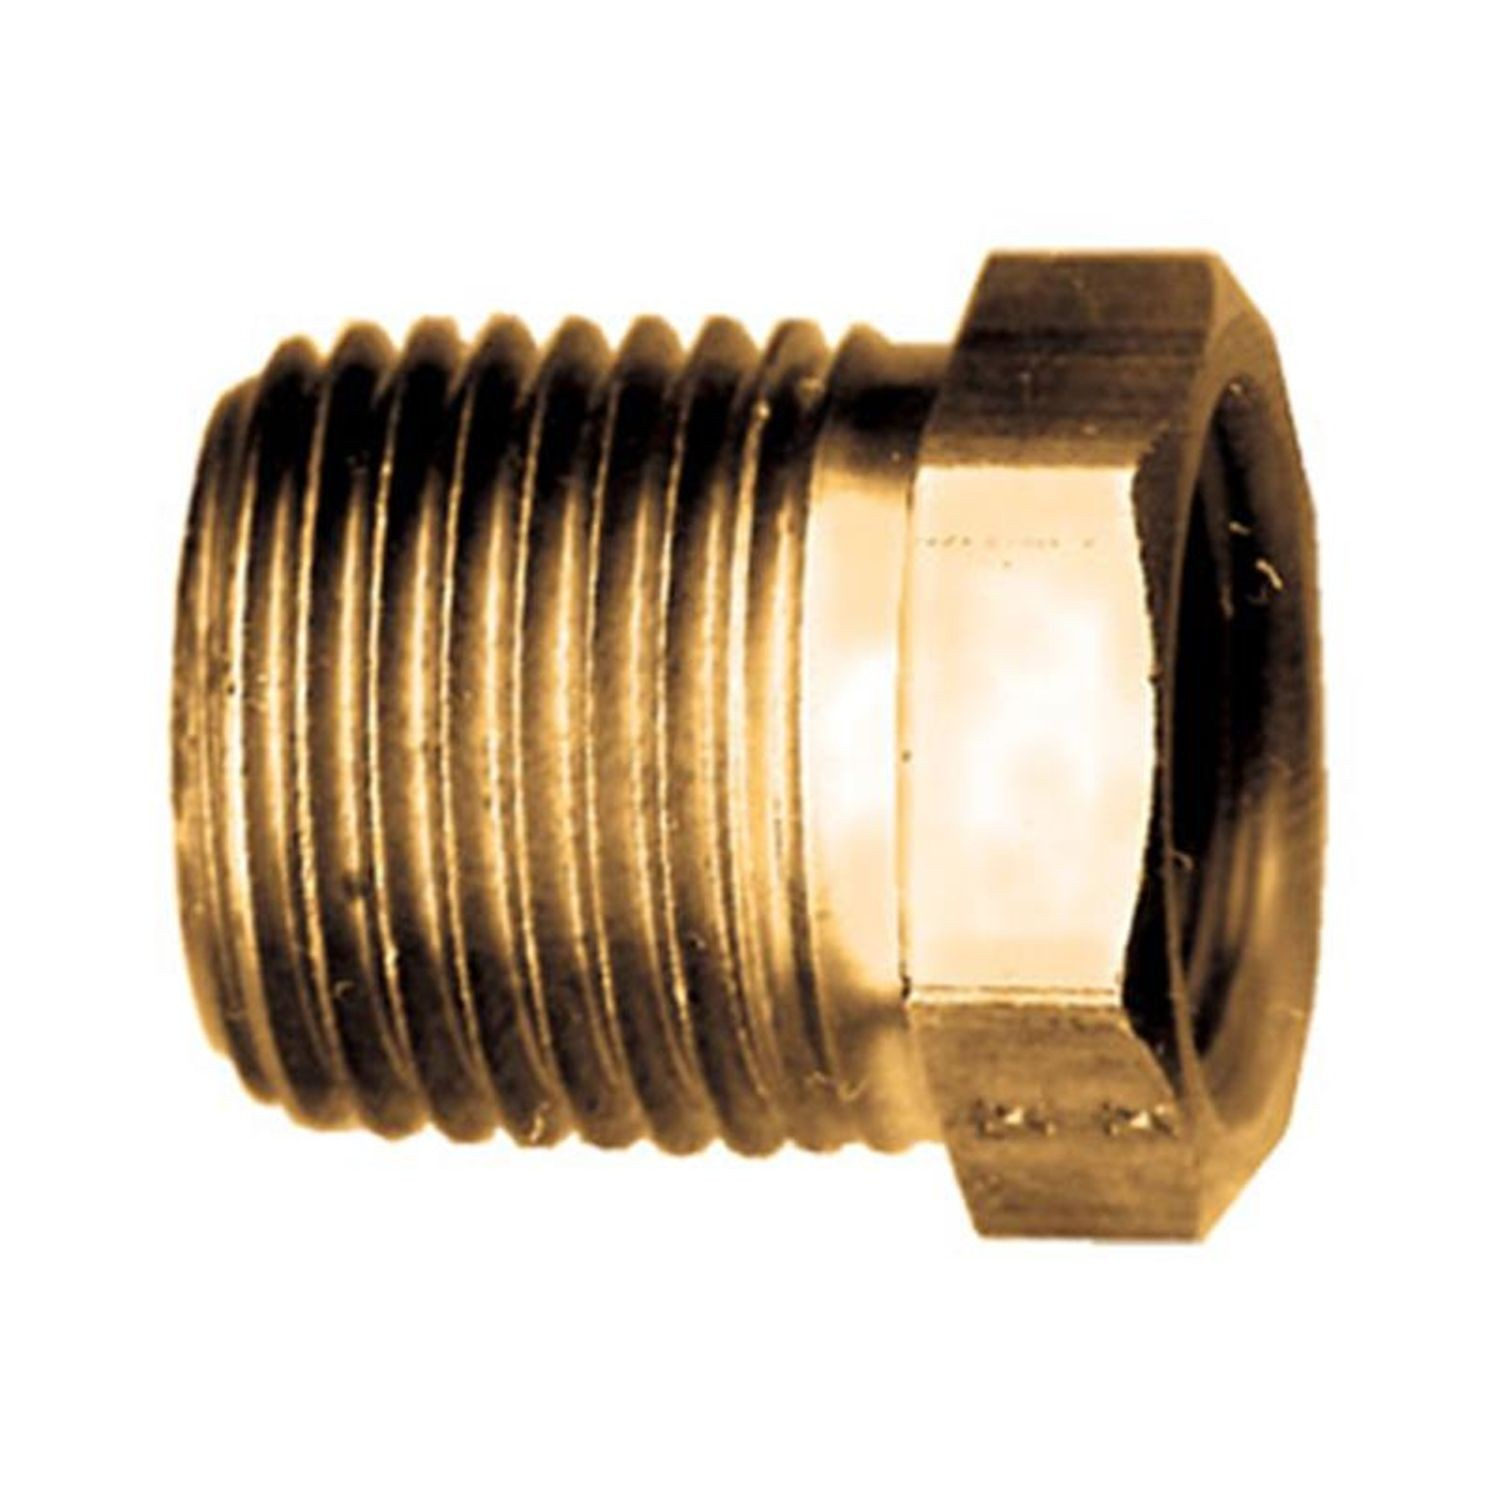 "Brass Hex Bushing 1/2"" Male Pipe Thread x 3/8"" Female Pipe Thread"